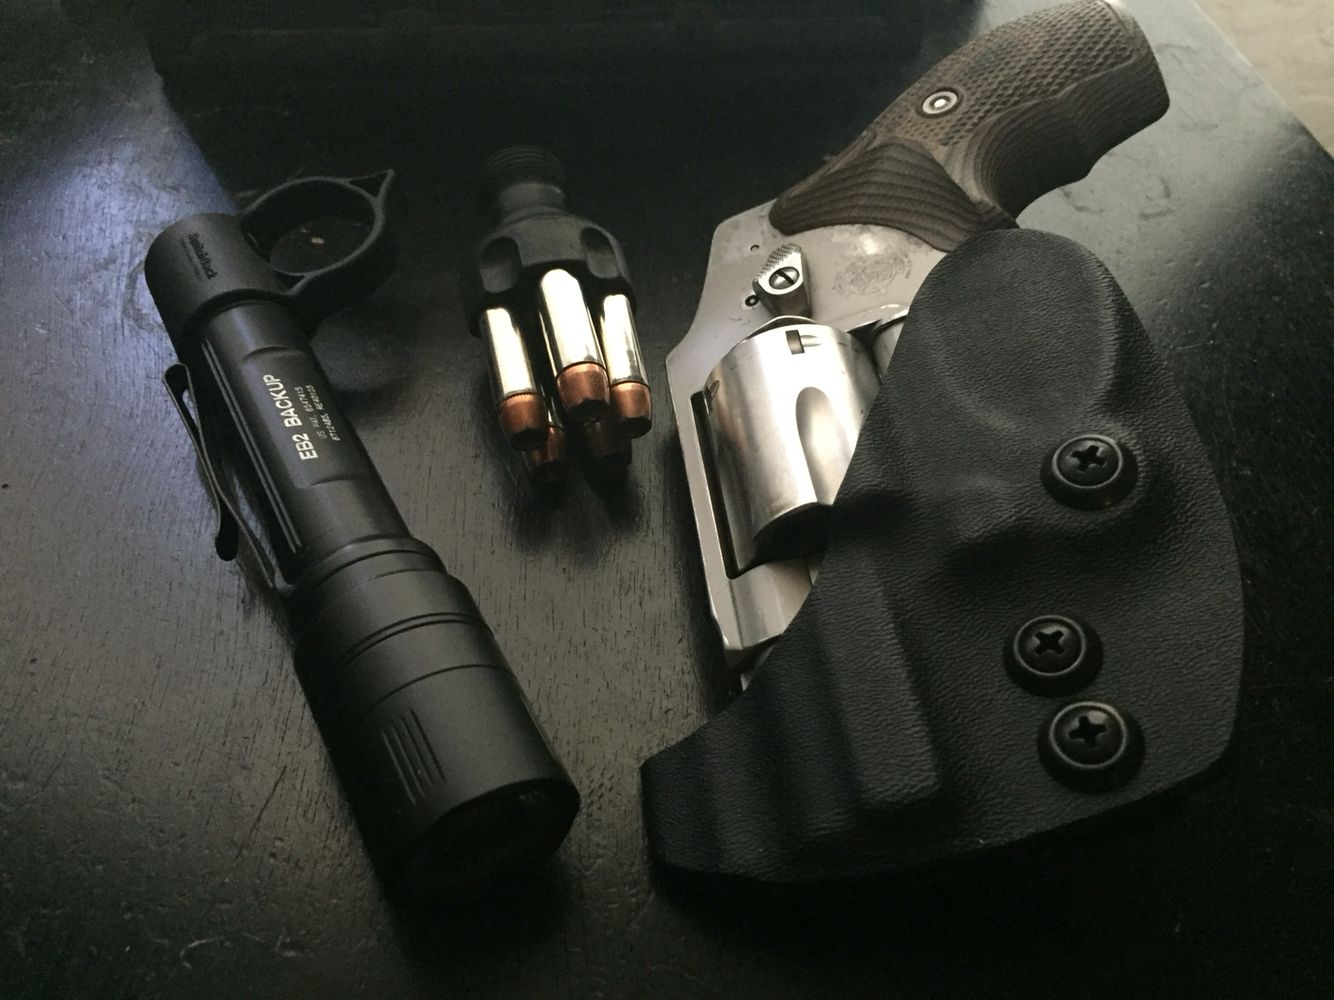 smith wesson j frame iwb minimalist kydex holster